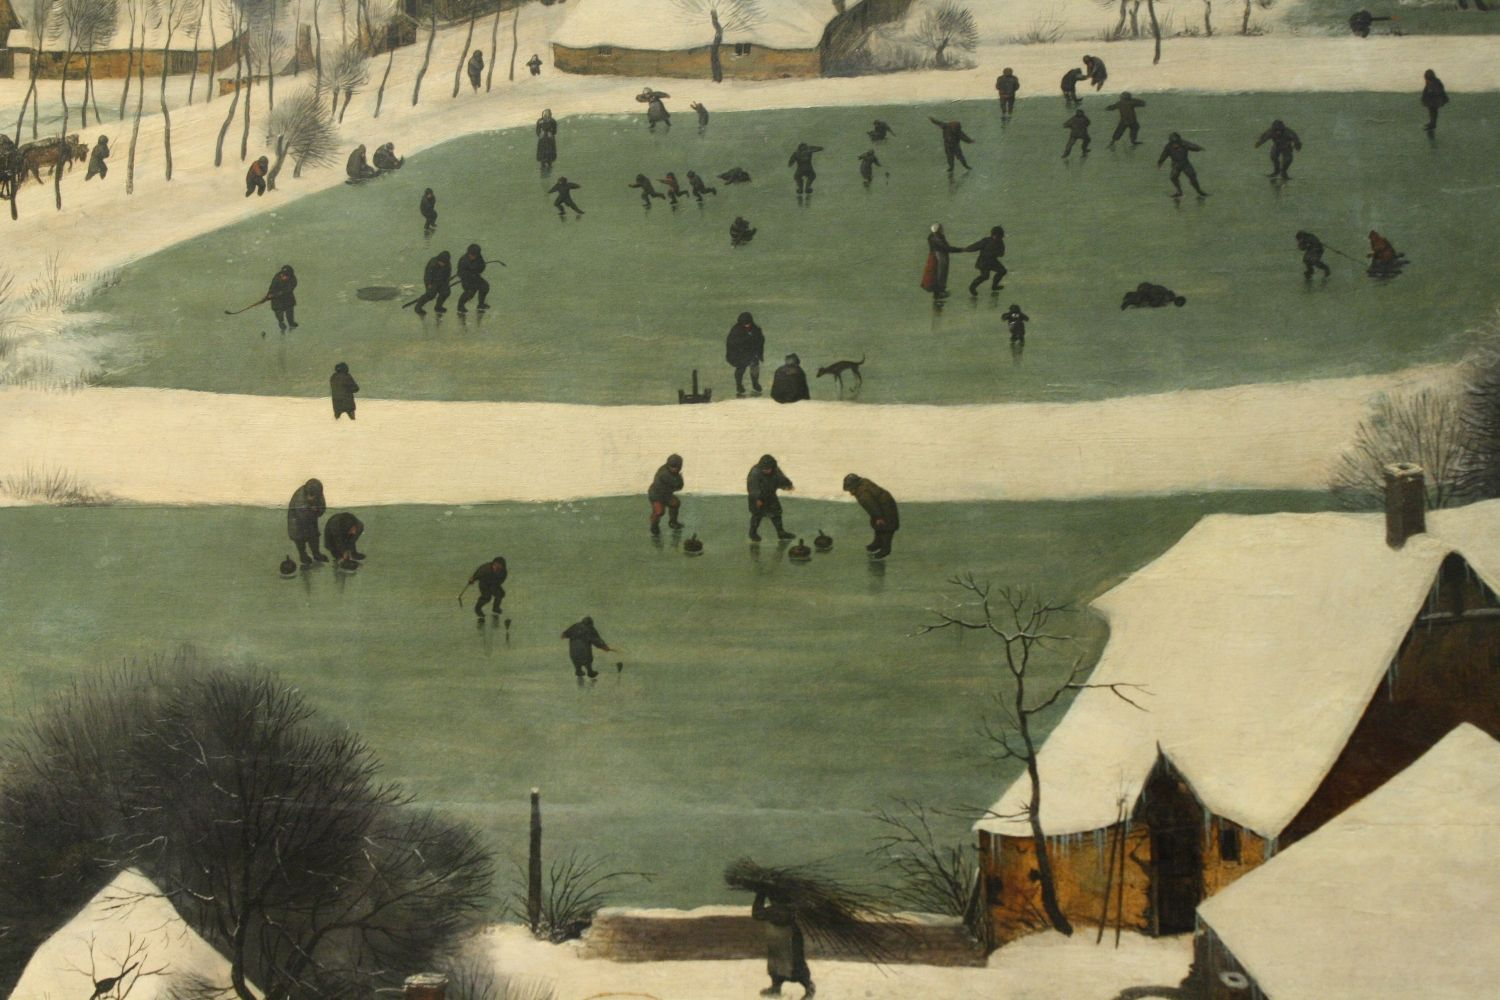 Pieter Bruegel (Elder) - Hunters in the Snow (winter)